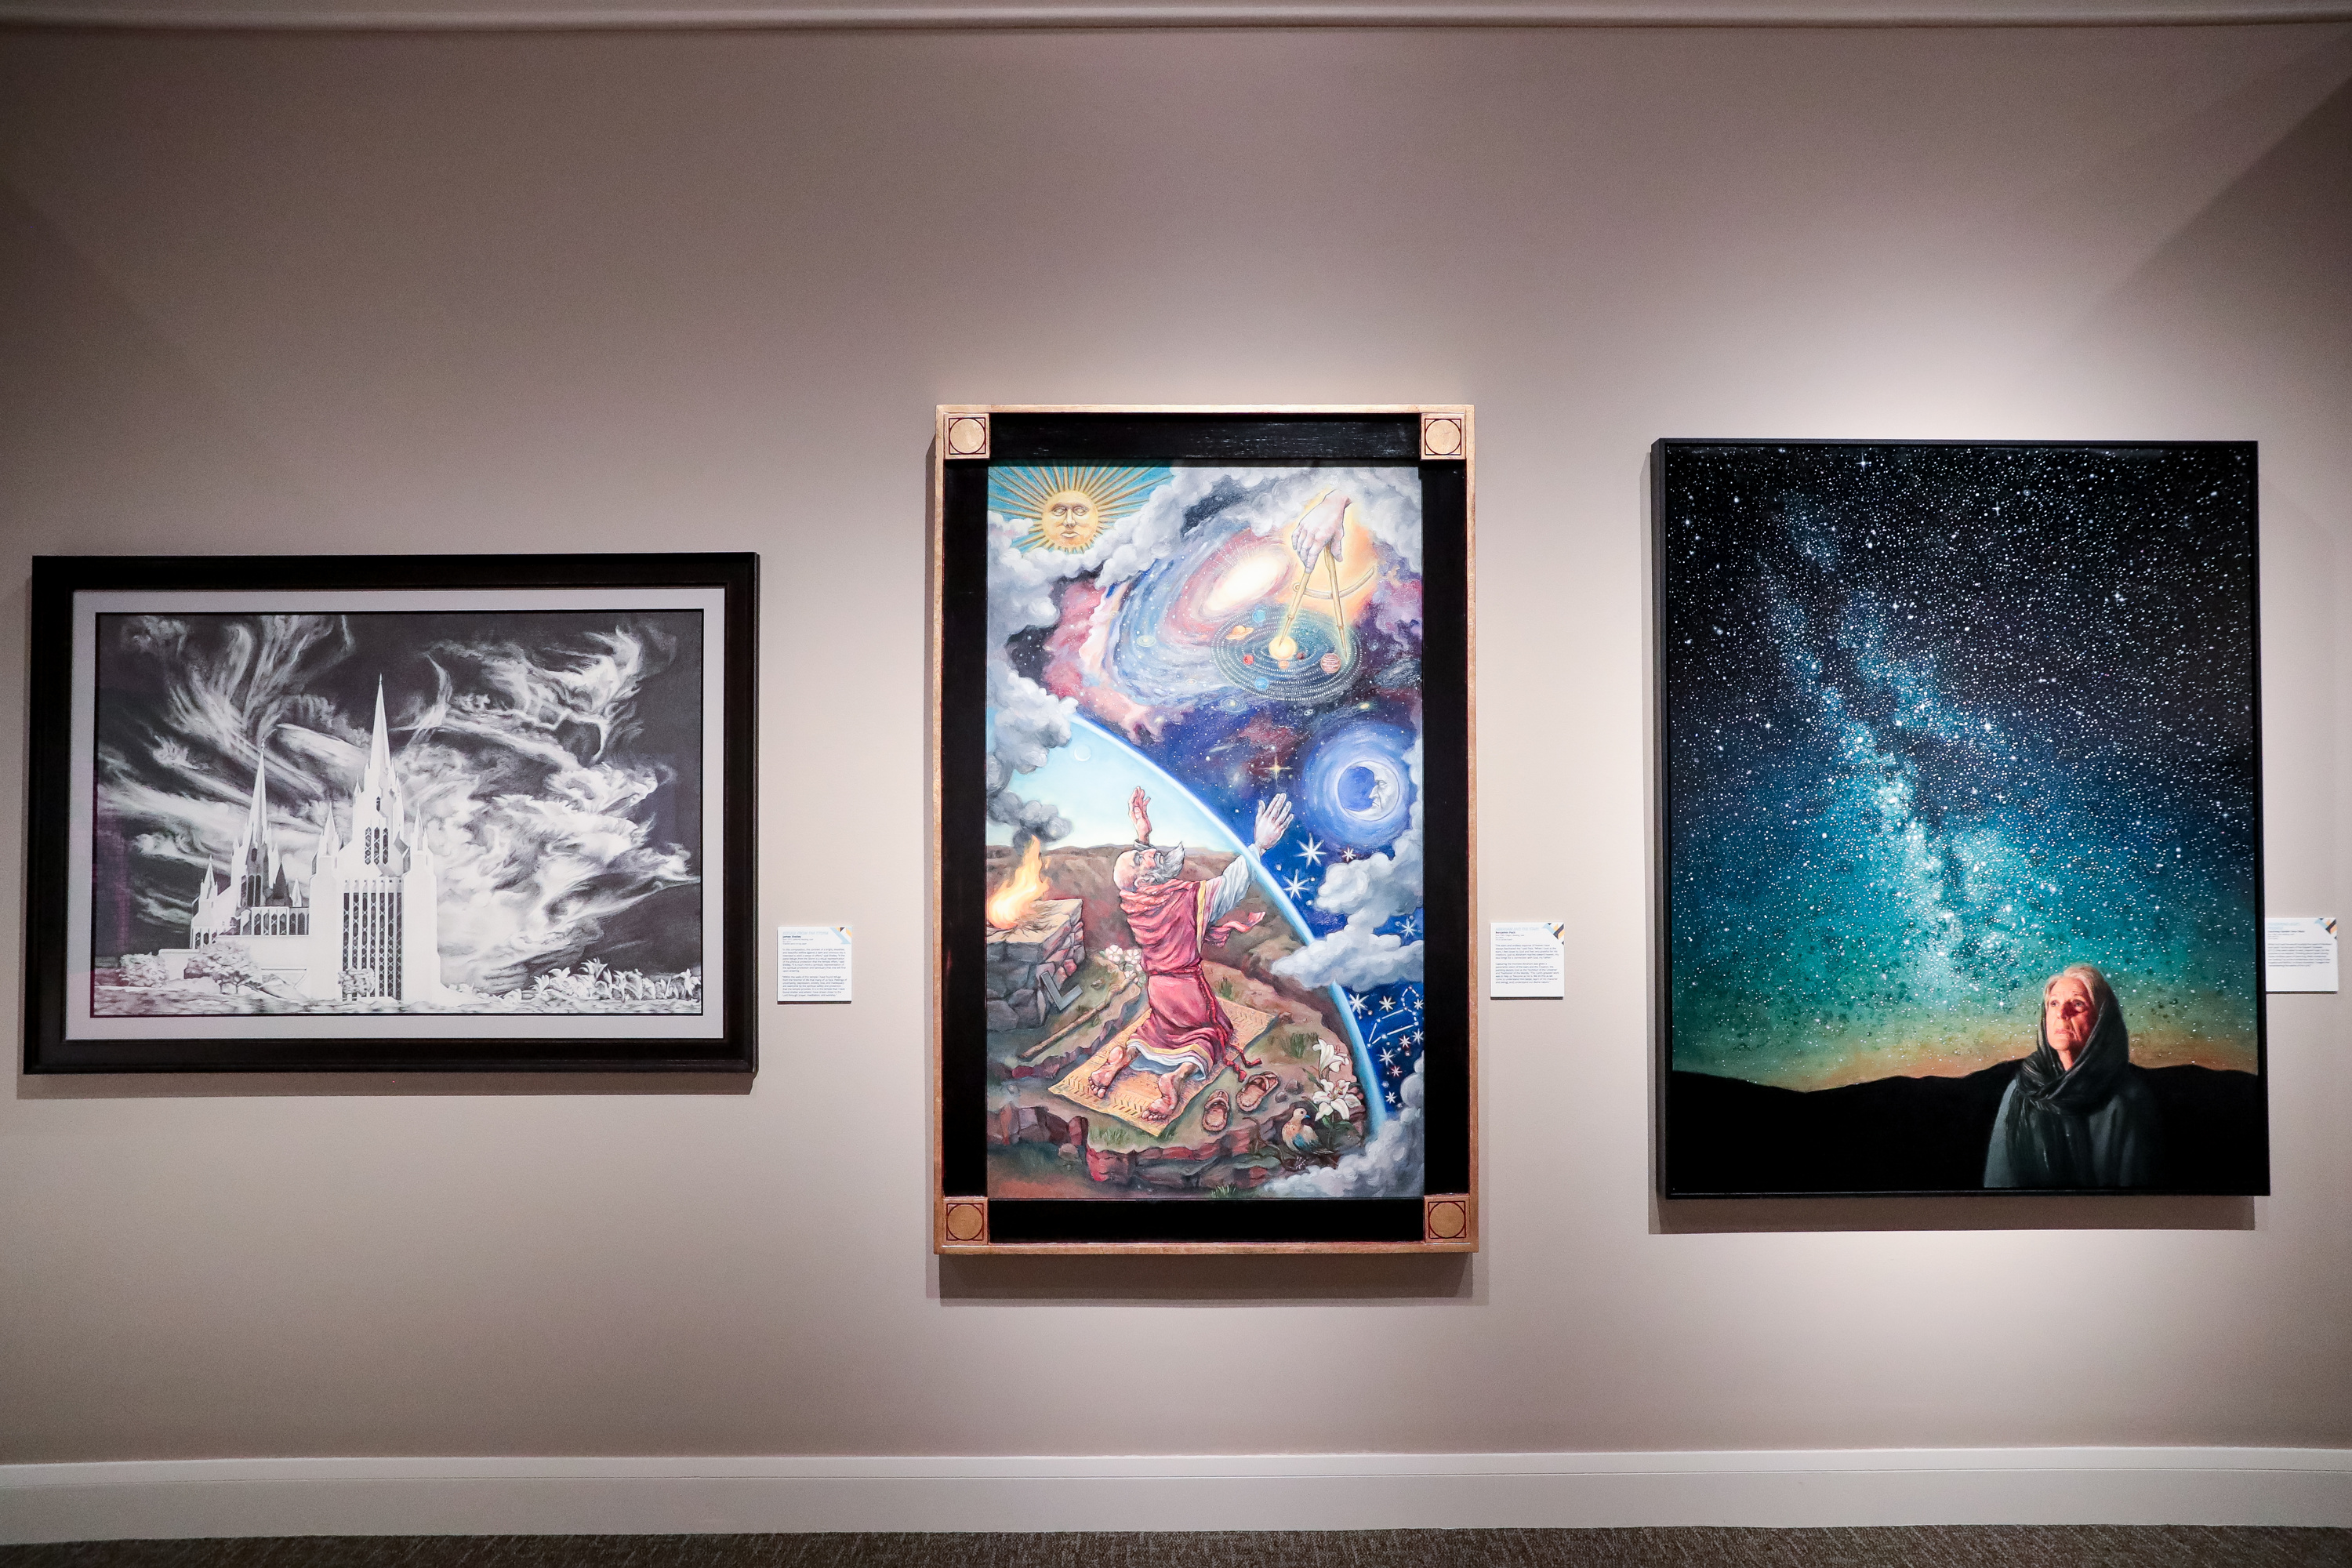 """""""Refuge from the Storm,"""" by Hames Shelley, """"Abraham and the Stars,"""" by Benjamin Pack, and """"Pondering God's Promise,"""" bu Courtney Vander Veur Matz, left to right, are pictured during a media preview for the 11th International Art Exhibition at the Church History Museum in Salt Lake City on Tuesday, March 12, 2019."""